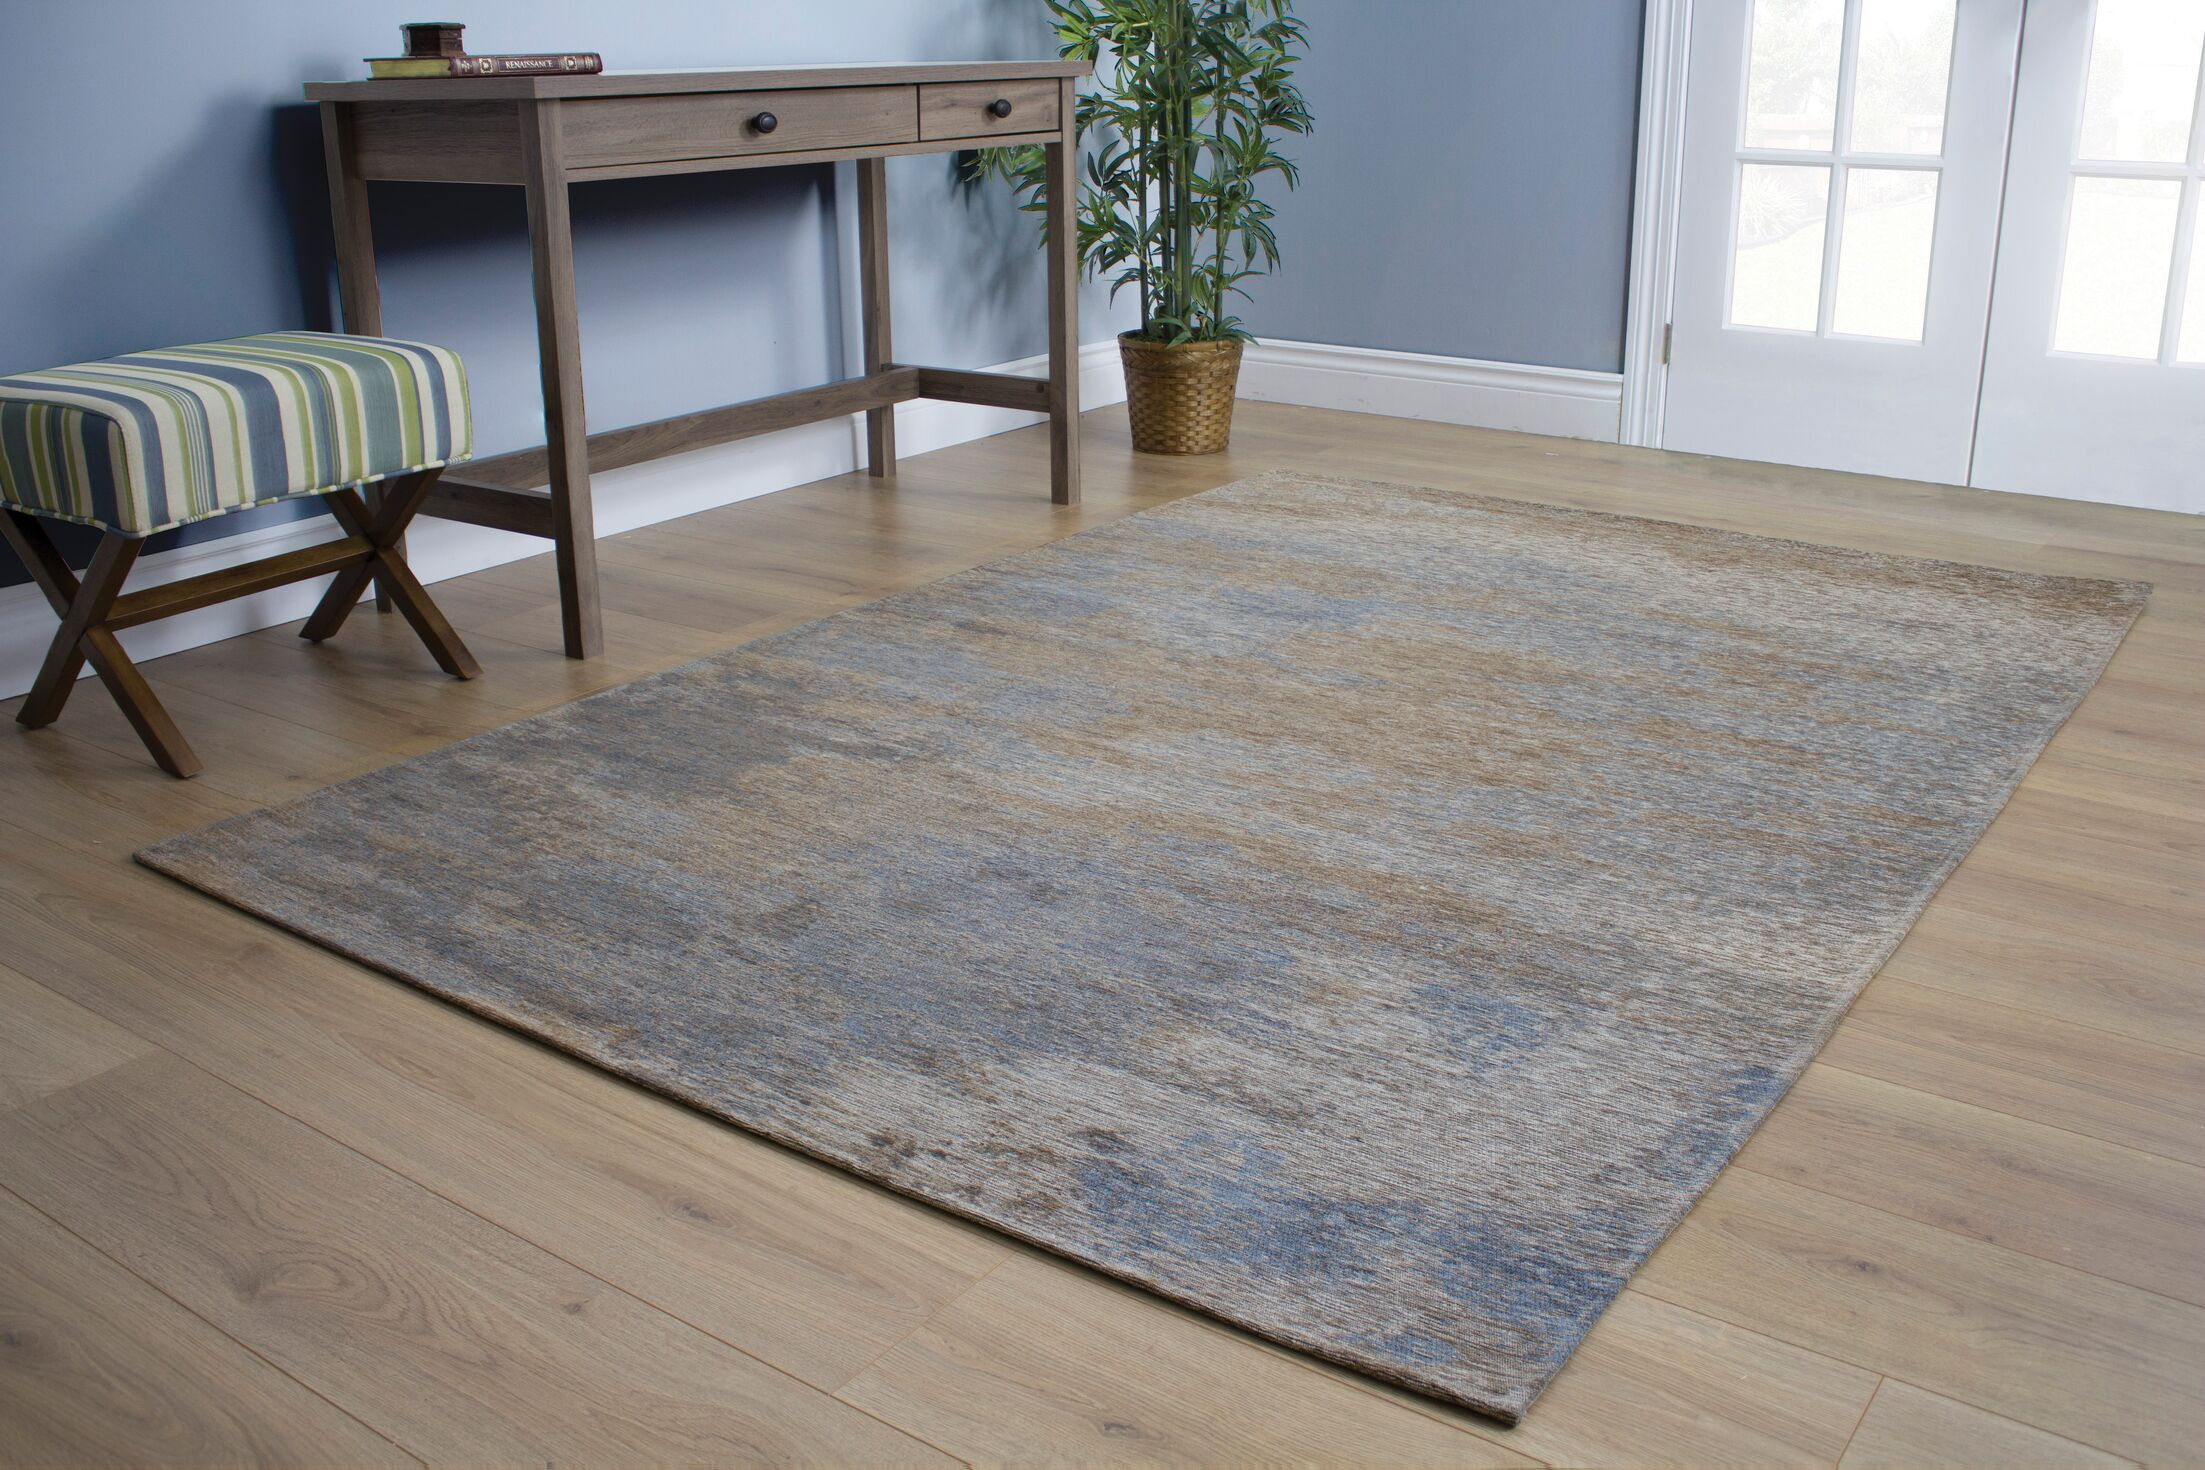 Emory Stormy Weather Blue/Brown Area Rug Rug Size: 5'1